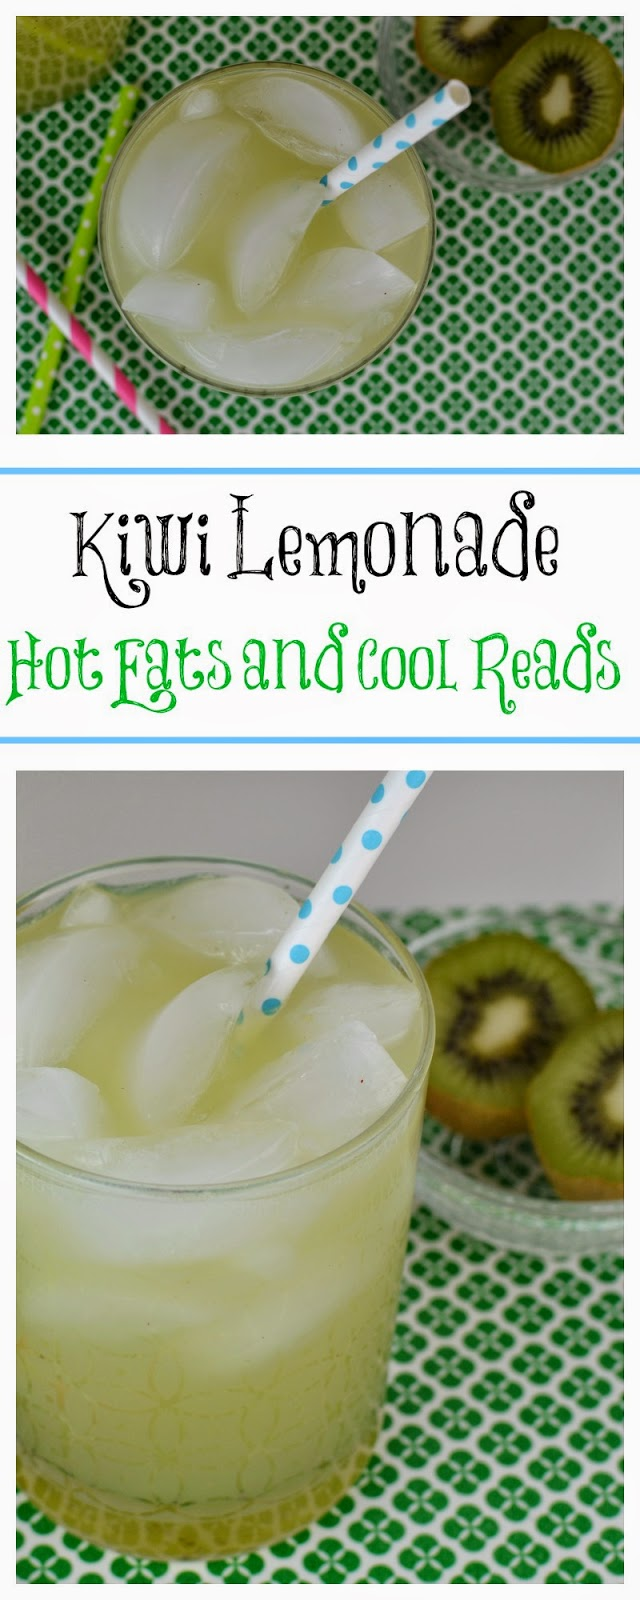 Refreshing drink for a warm, sunny day! Add your favorite liquor for an adult beverage! Kiwi Lemonade from Hot Eats and Cool Reads!